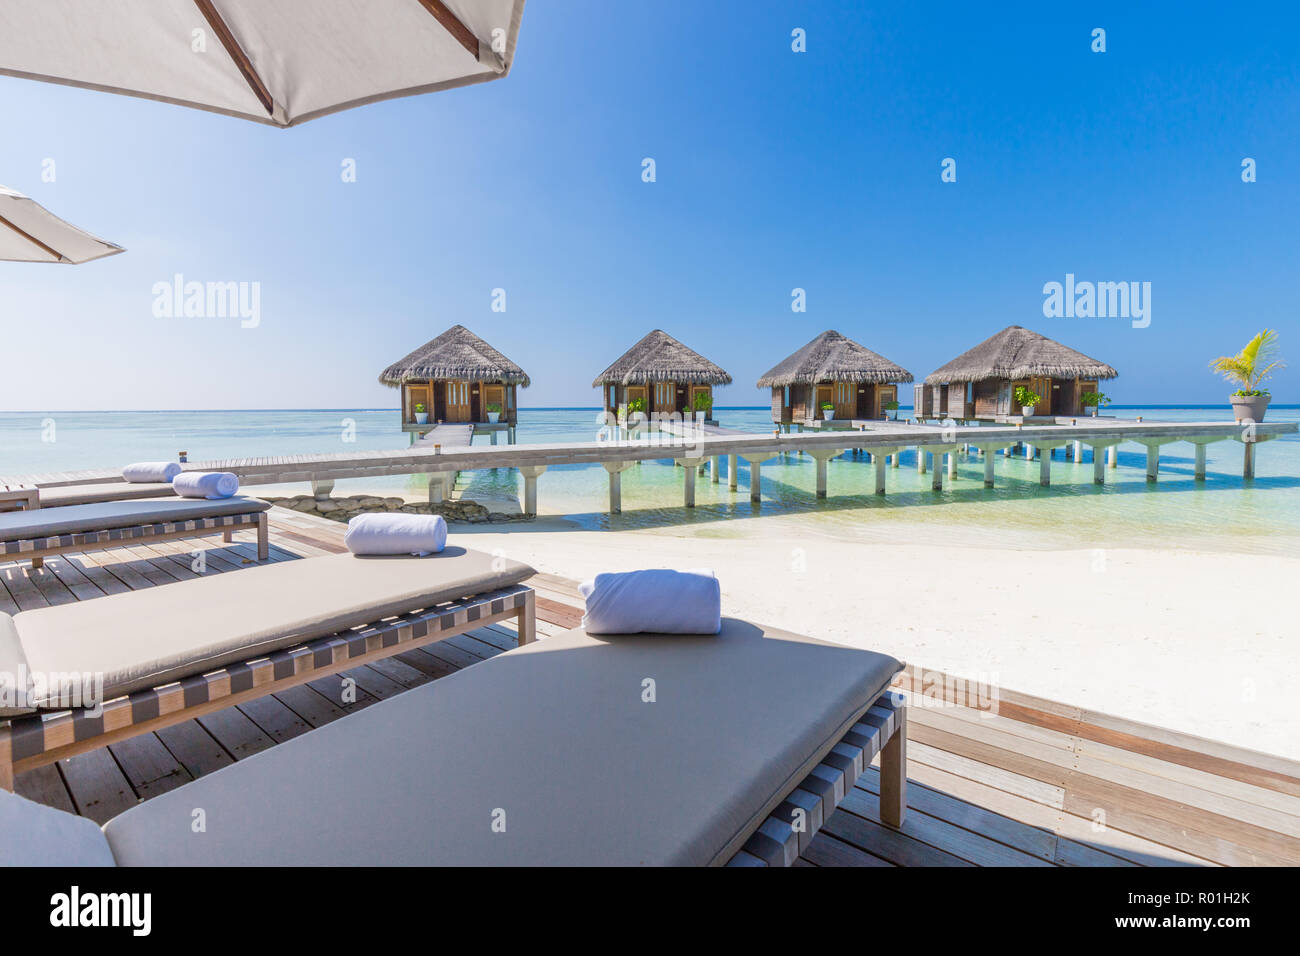 Luxury water villas in Maldives, tropical resort or hotel background. Exotic travel destination and Stock Photo